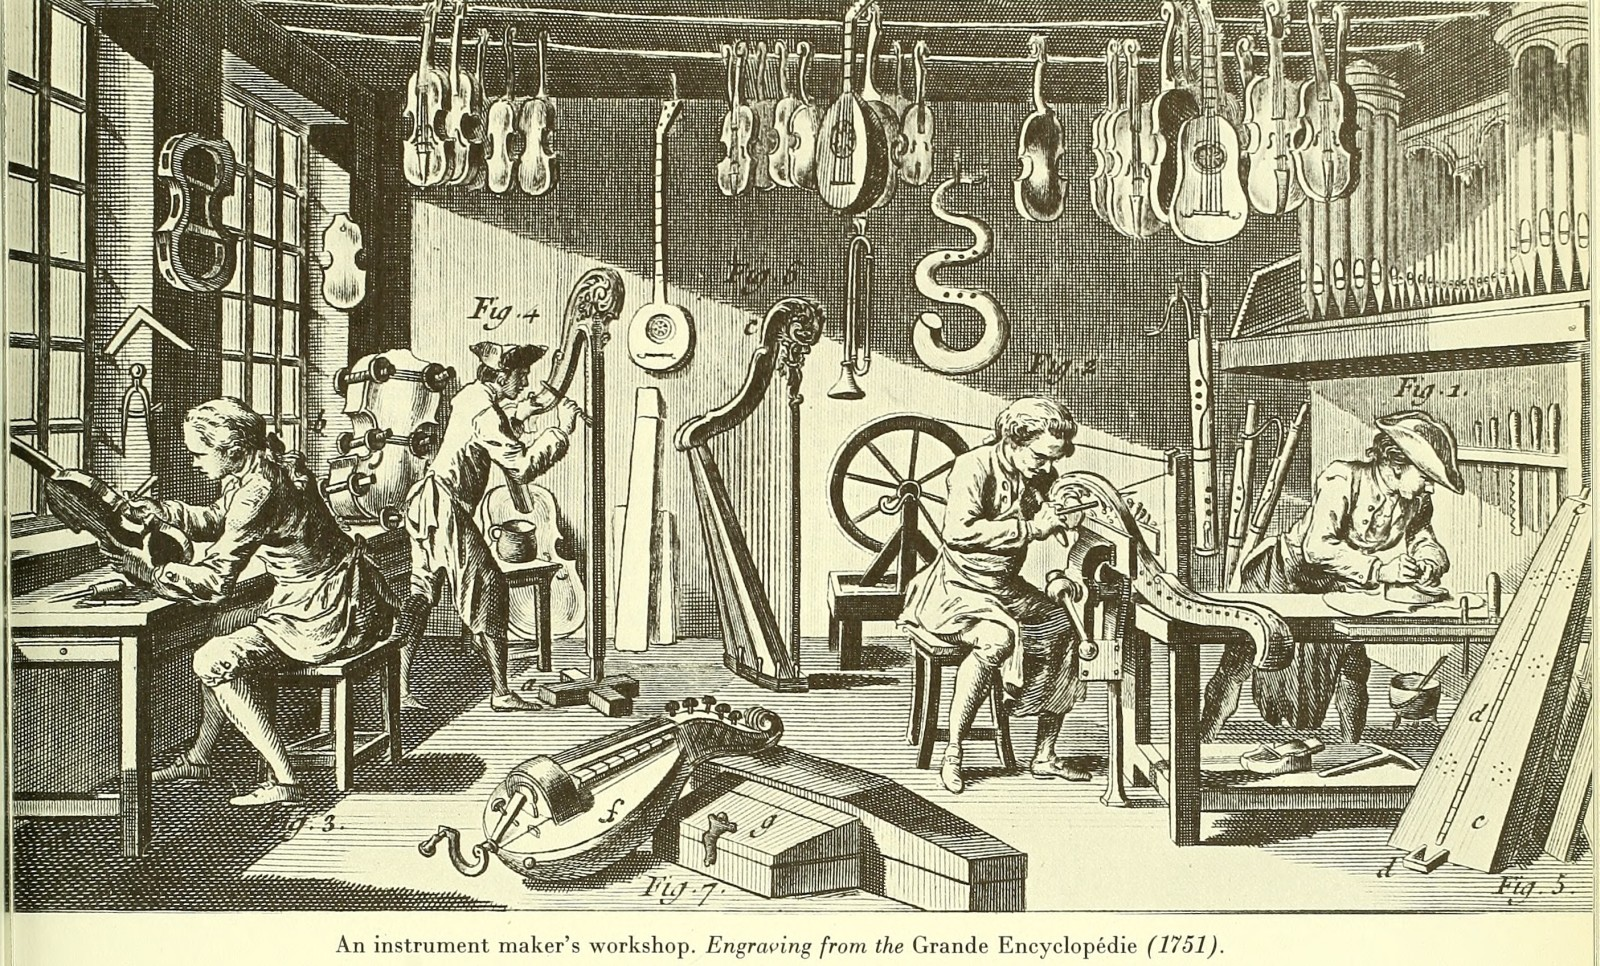 An instrument maker's workshop